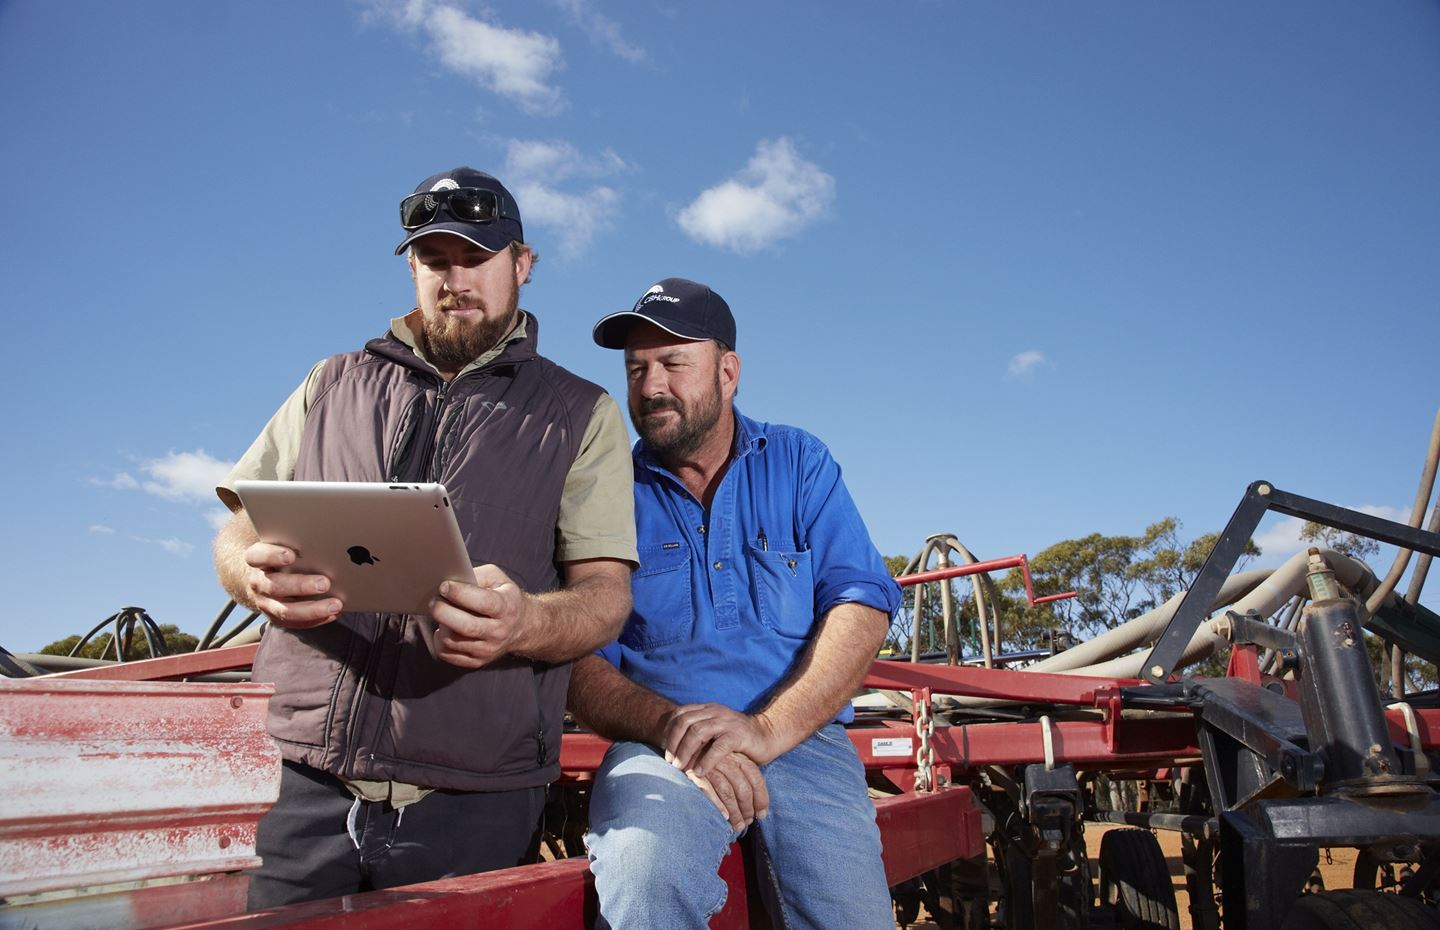 Two men wearing caps sit on a red tractor while looking at an ipad together